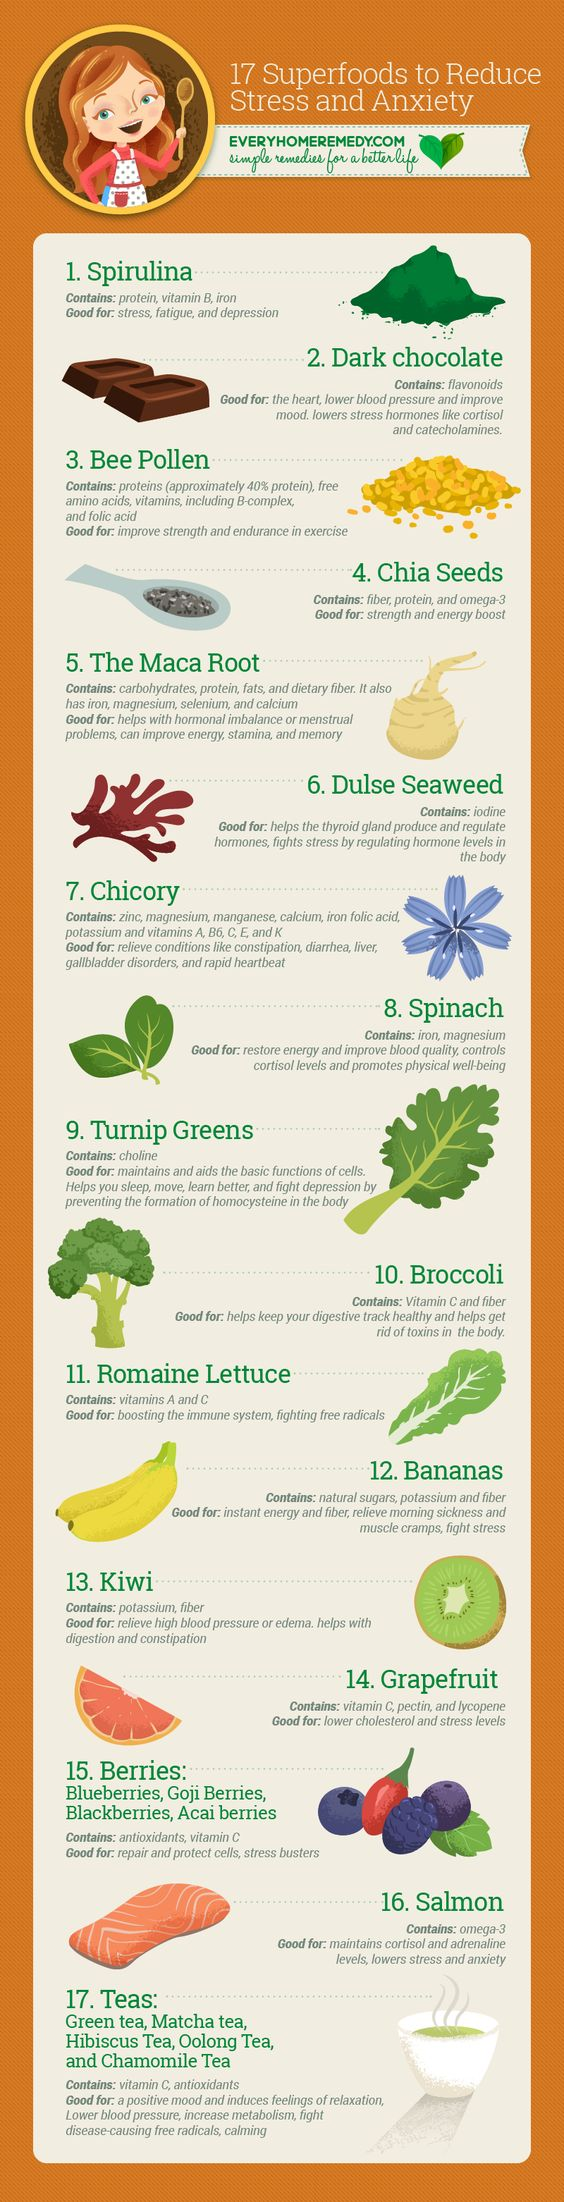 17 Superfoods to Reduce Stress and Anxiety - Naturally #superfood